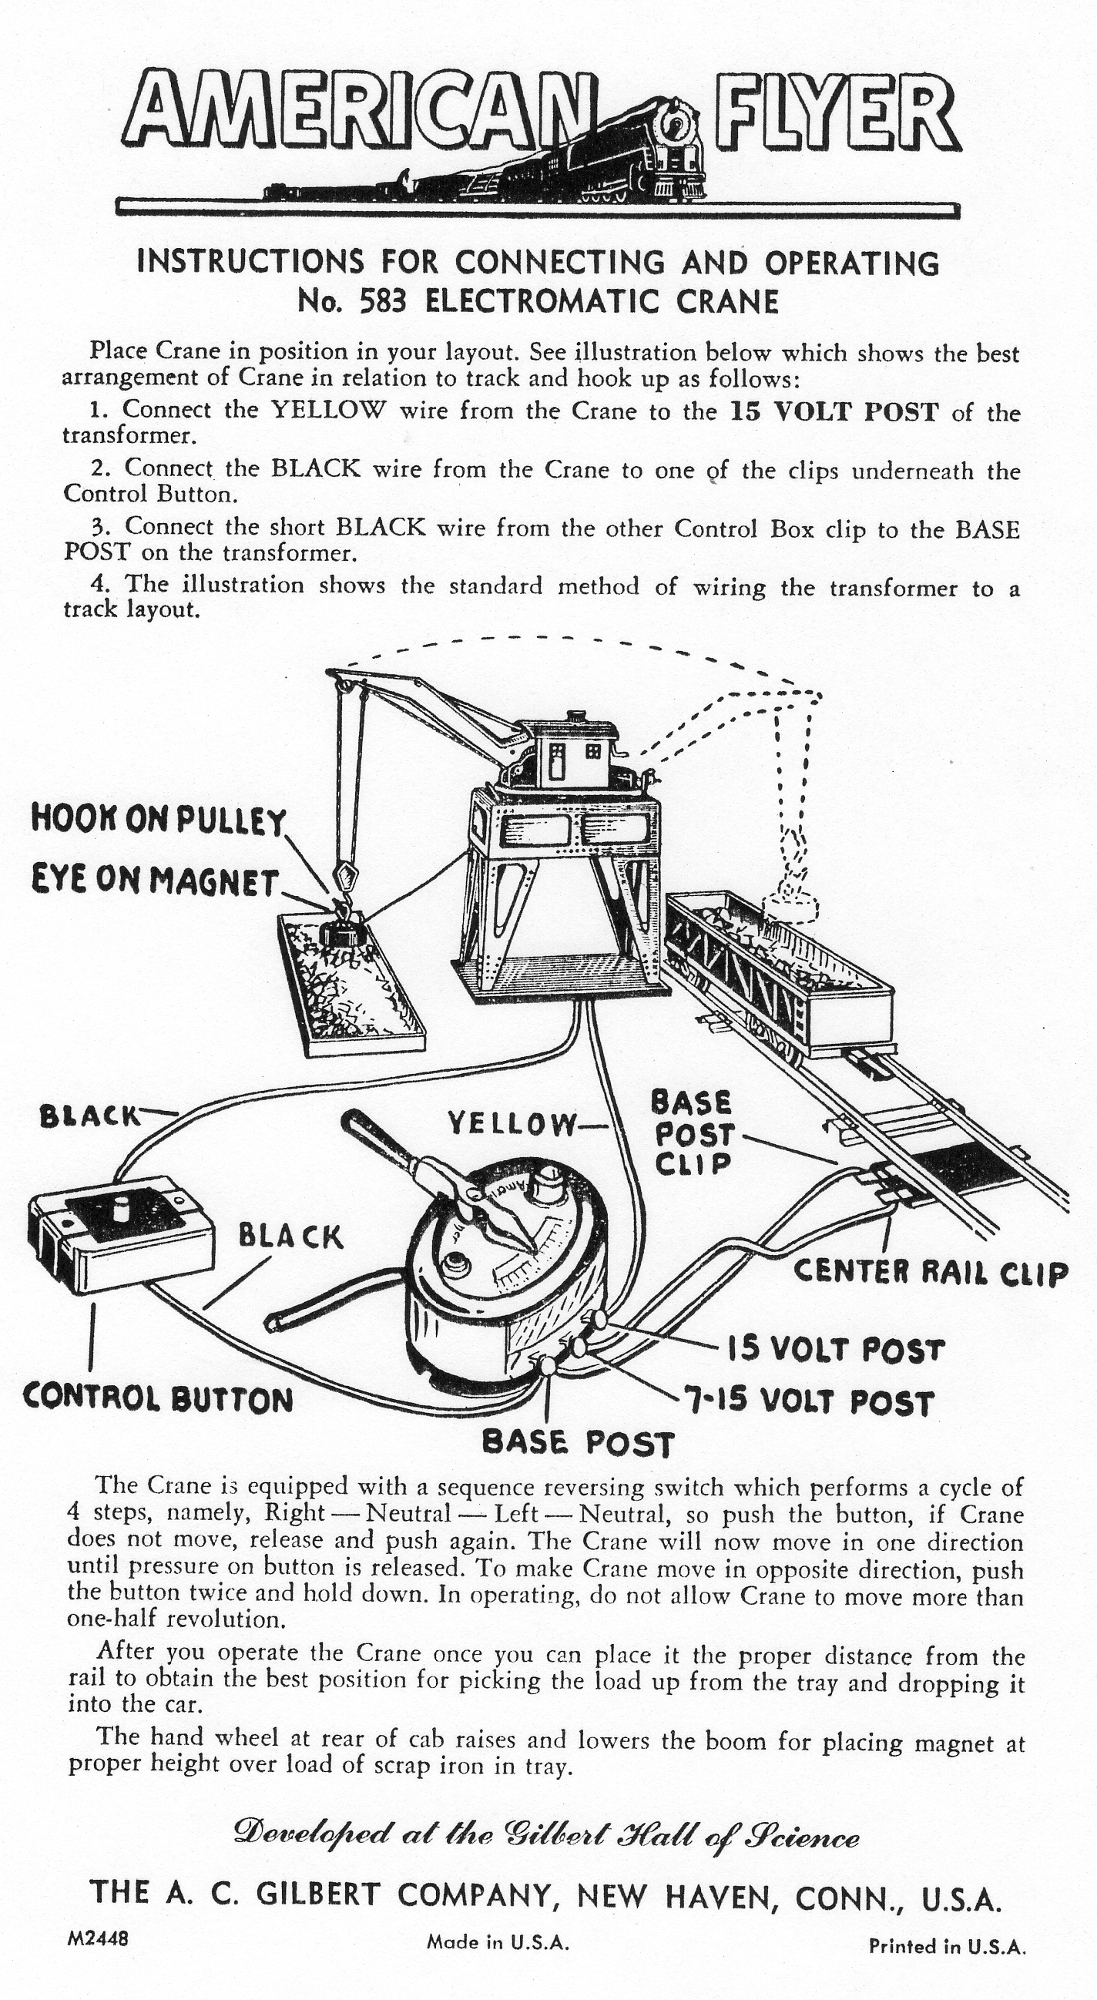 Instructions for Connecting and Operating No. 583 Electromatic Crane